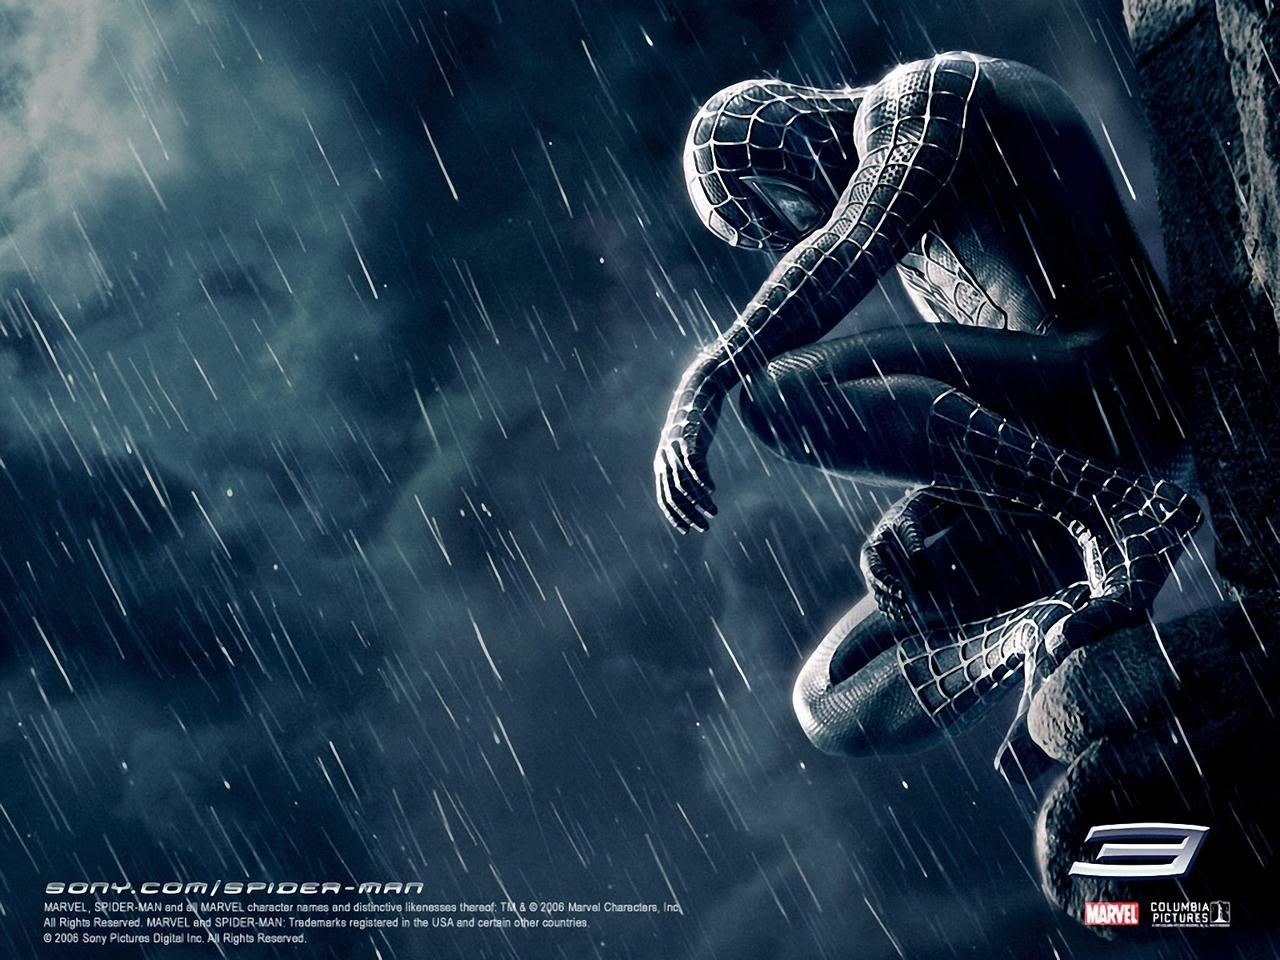 Spider-Man3Wallpaper10-1024.jpg